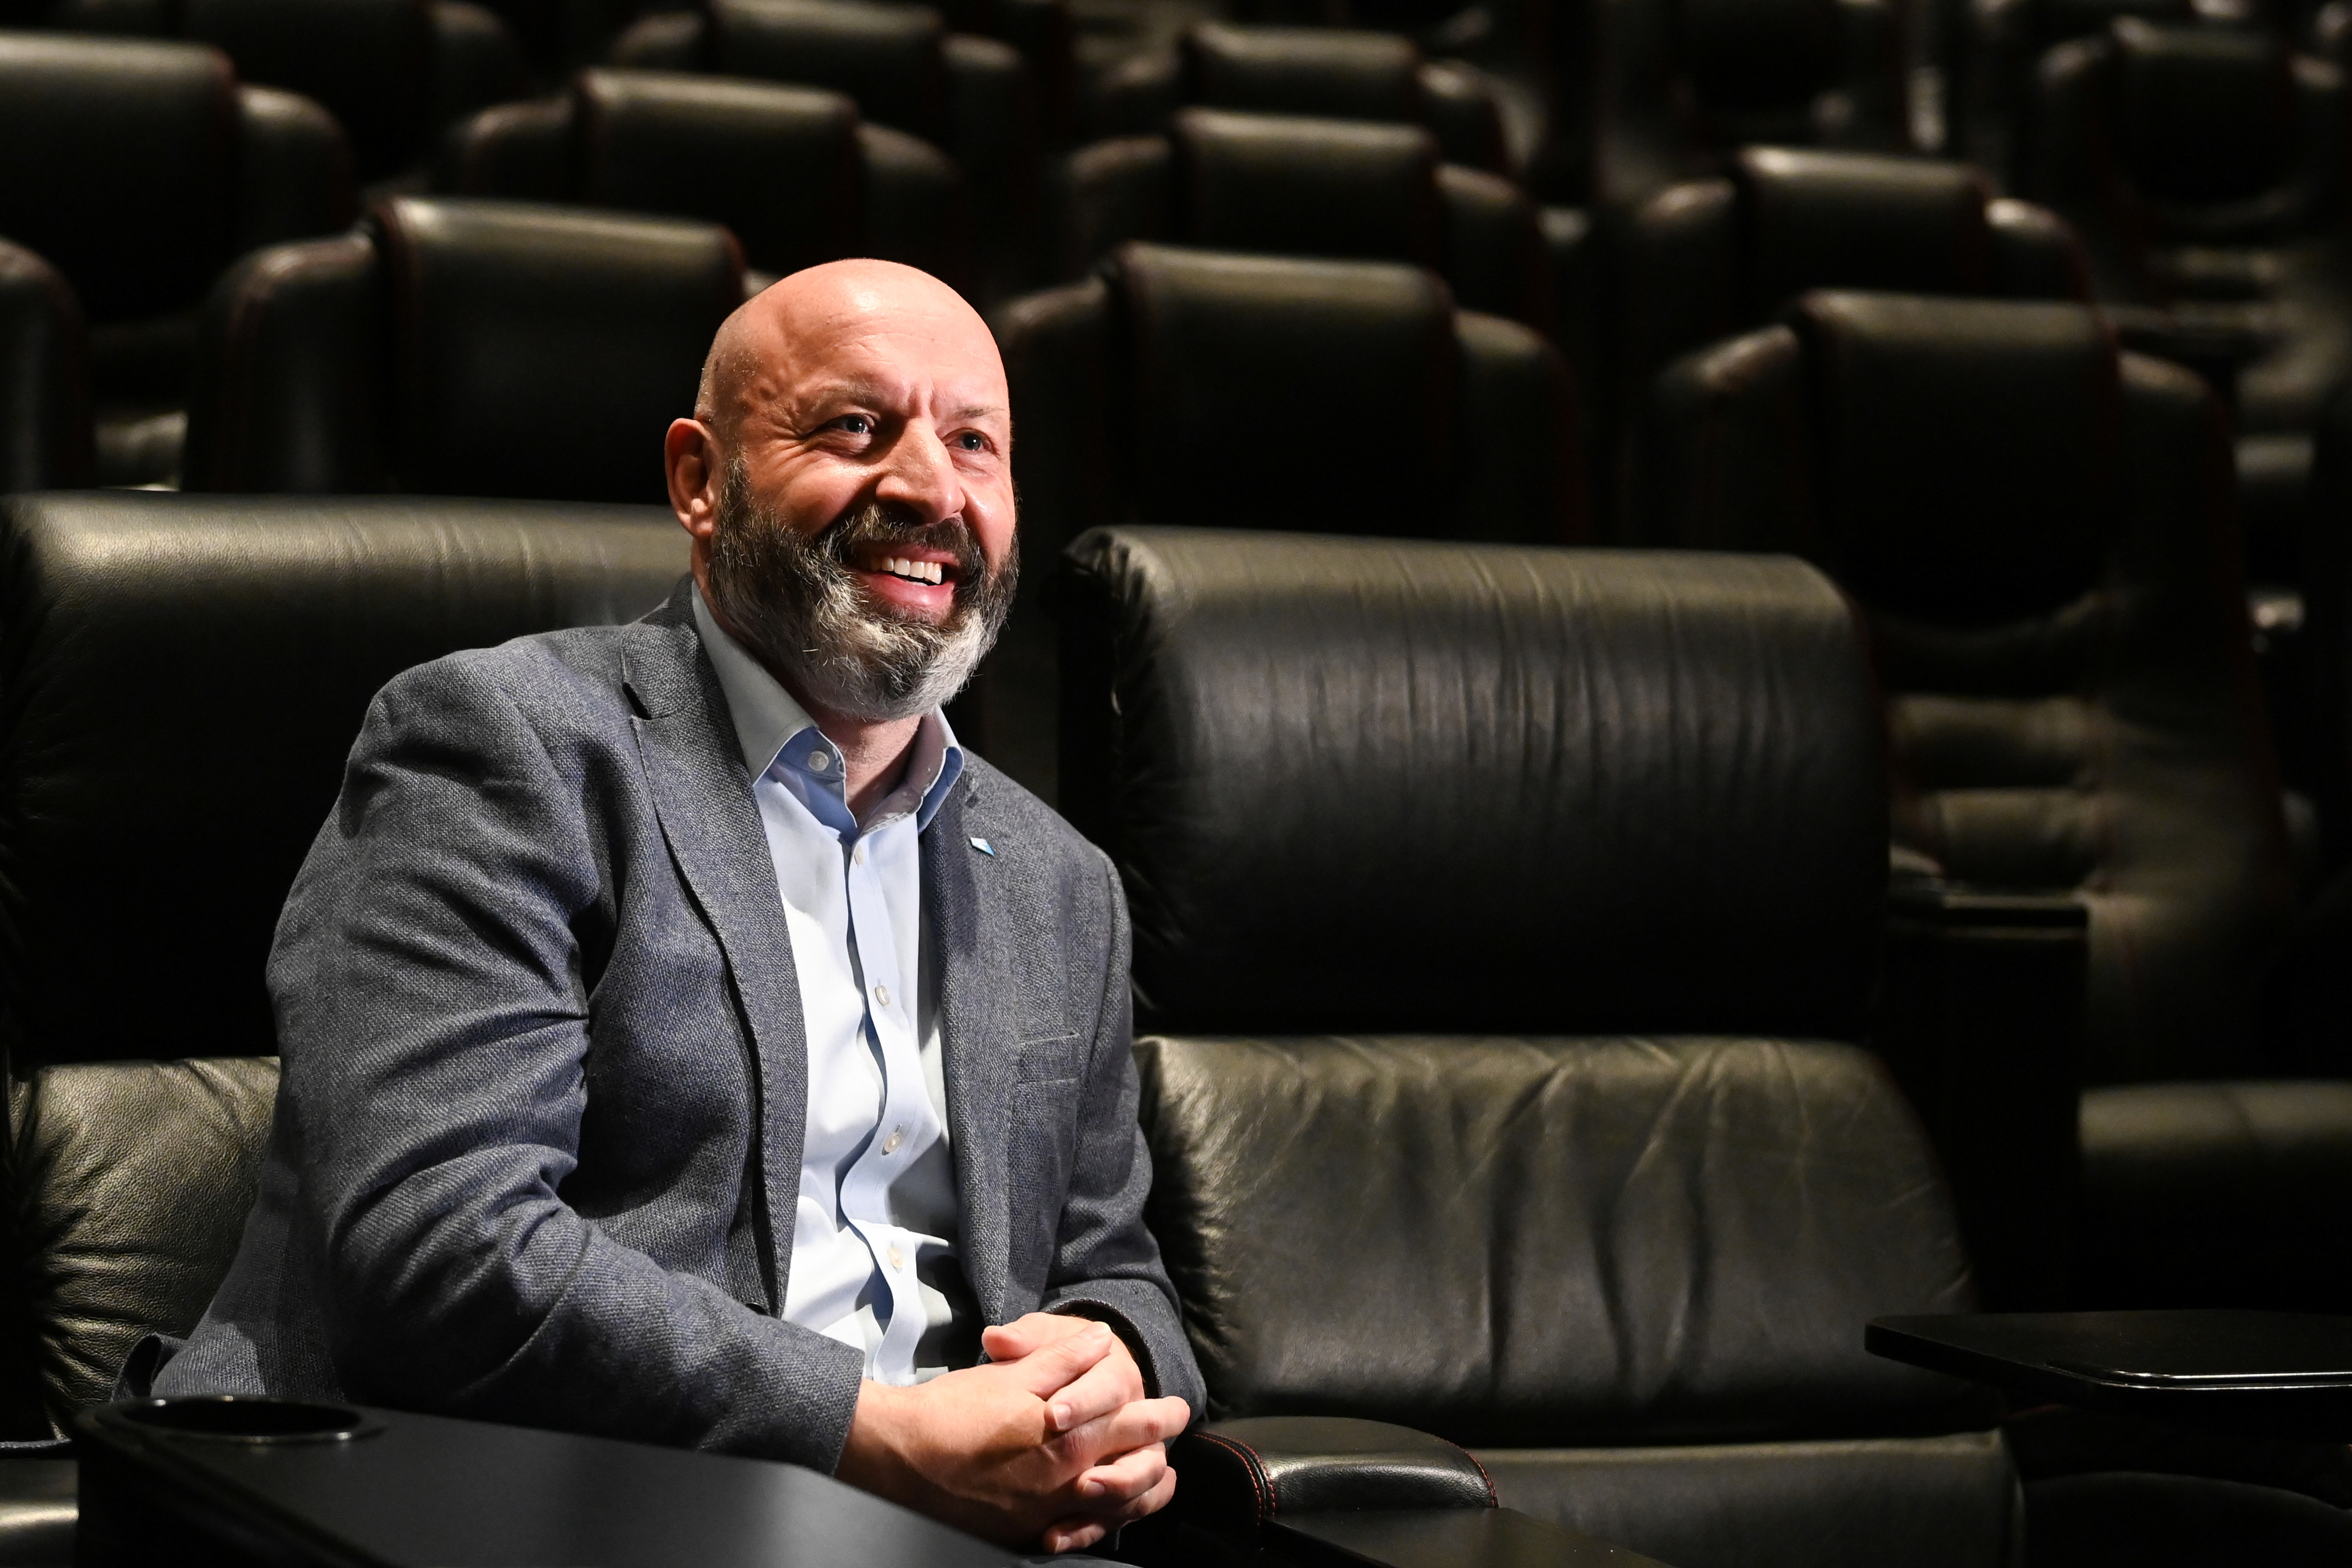 Phil Clapp, Chief Executive of the UK Cinema Association, poses at an auditorium of Vue cinema in Leicester Square during its reopening, as coronavirus disease (COVID-19) restrictions continue to ease, in London, Britain, May 17, 2021. REUTERS/Toby Melville